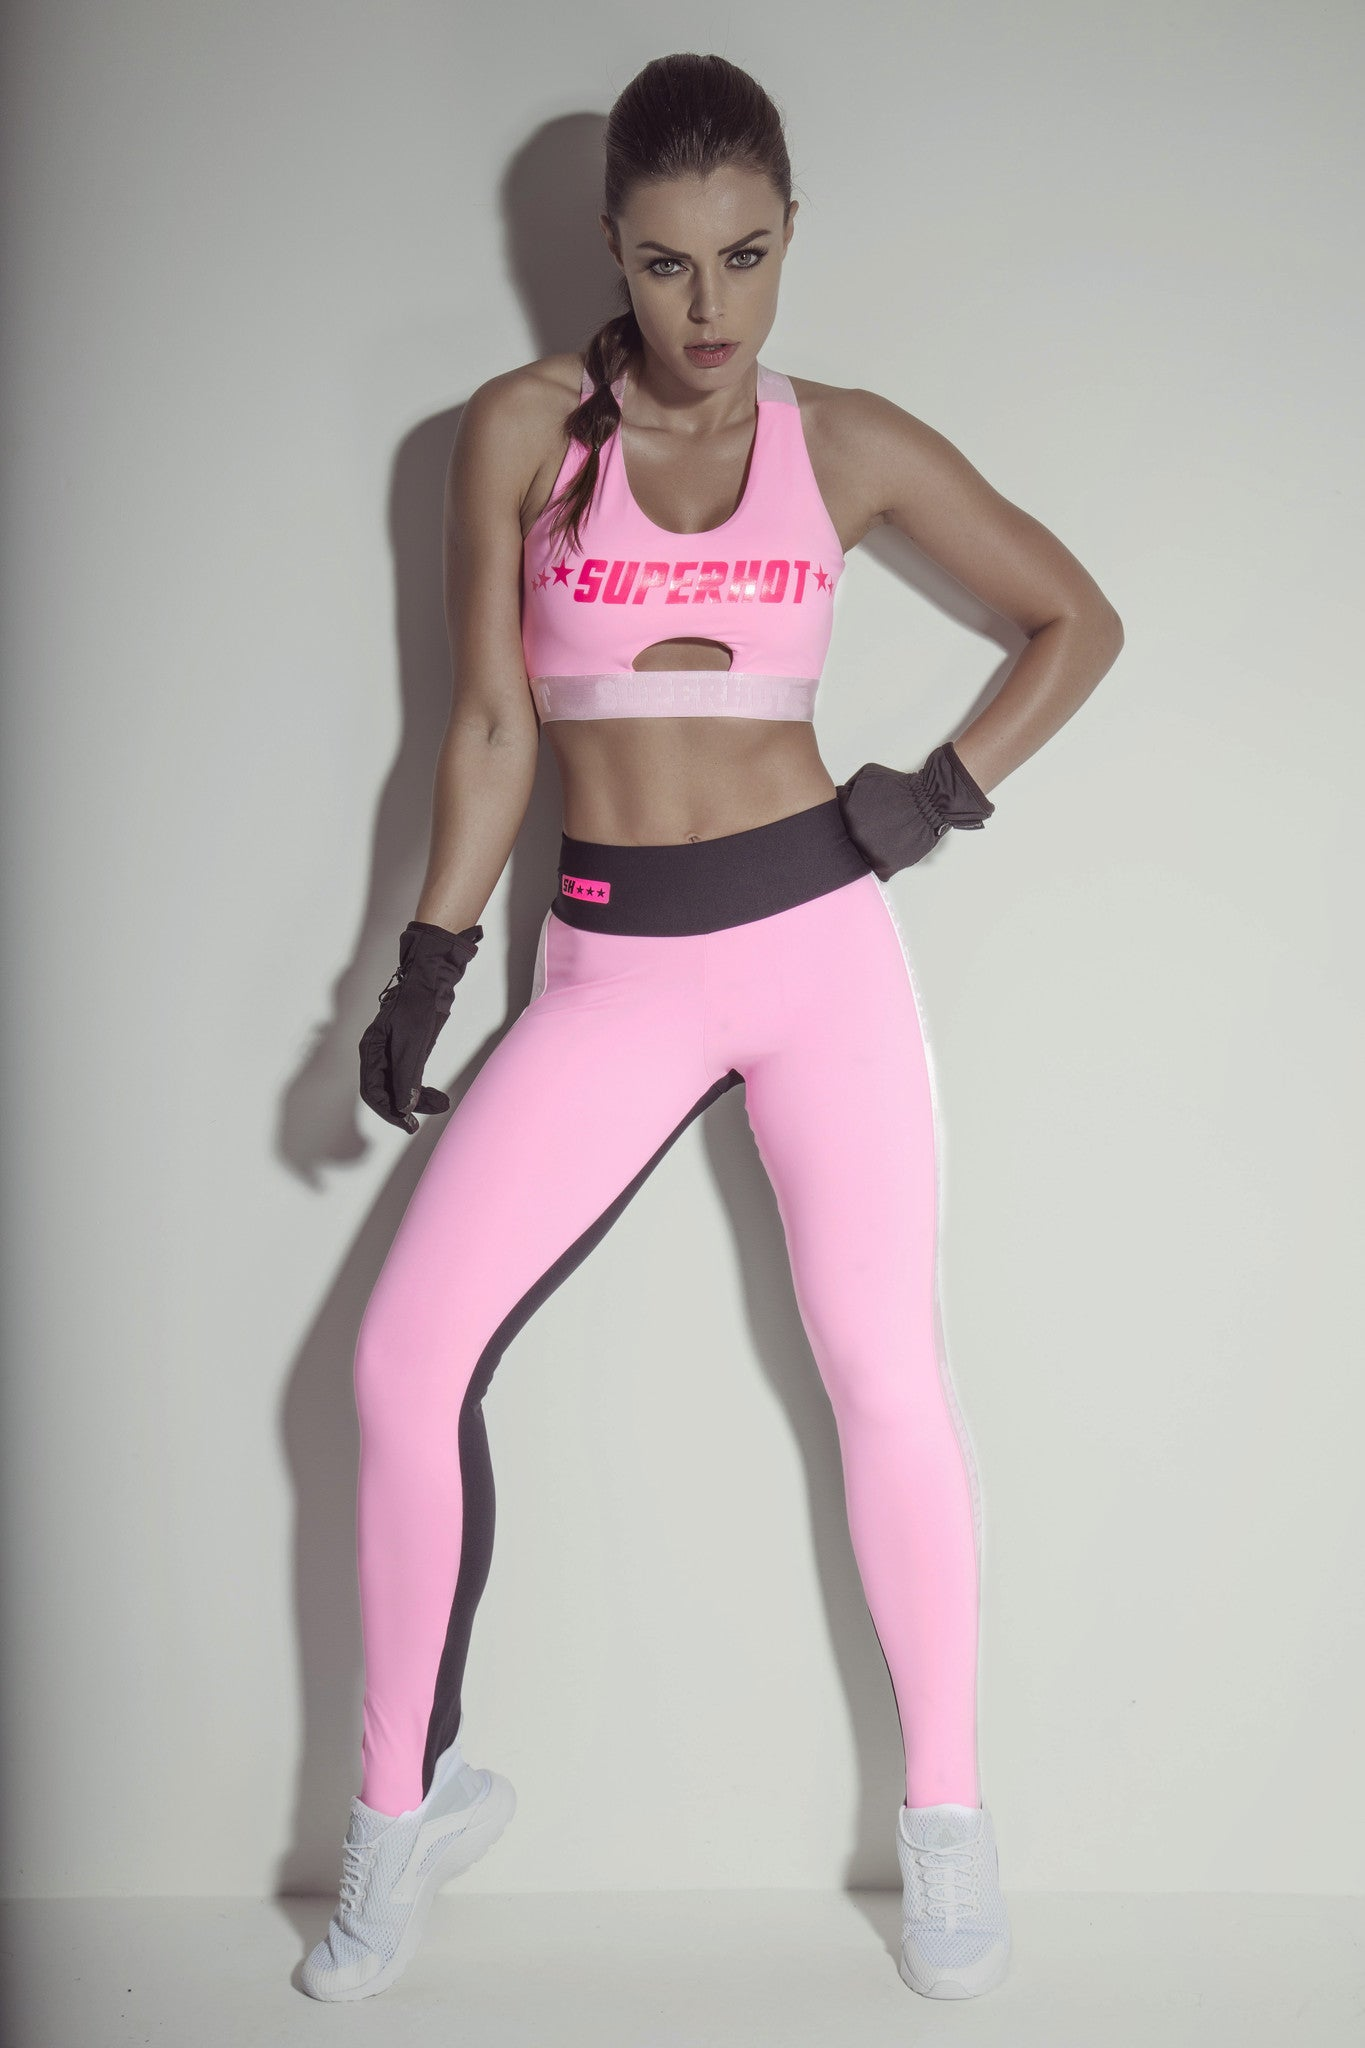 LEGGING SUPERHOT ACTIVITY - SUPERHOT - FitZee